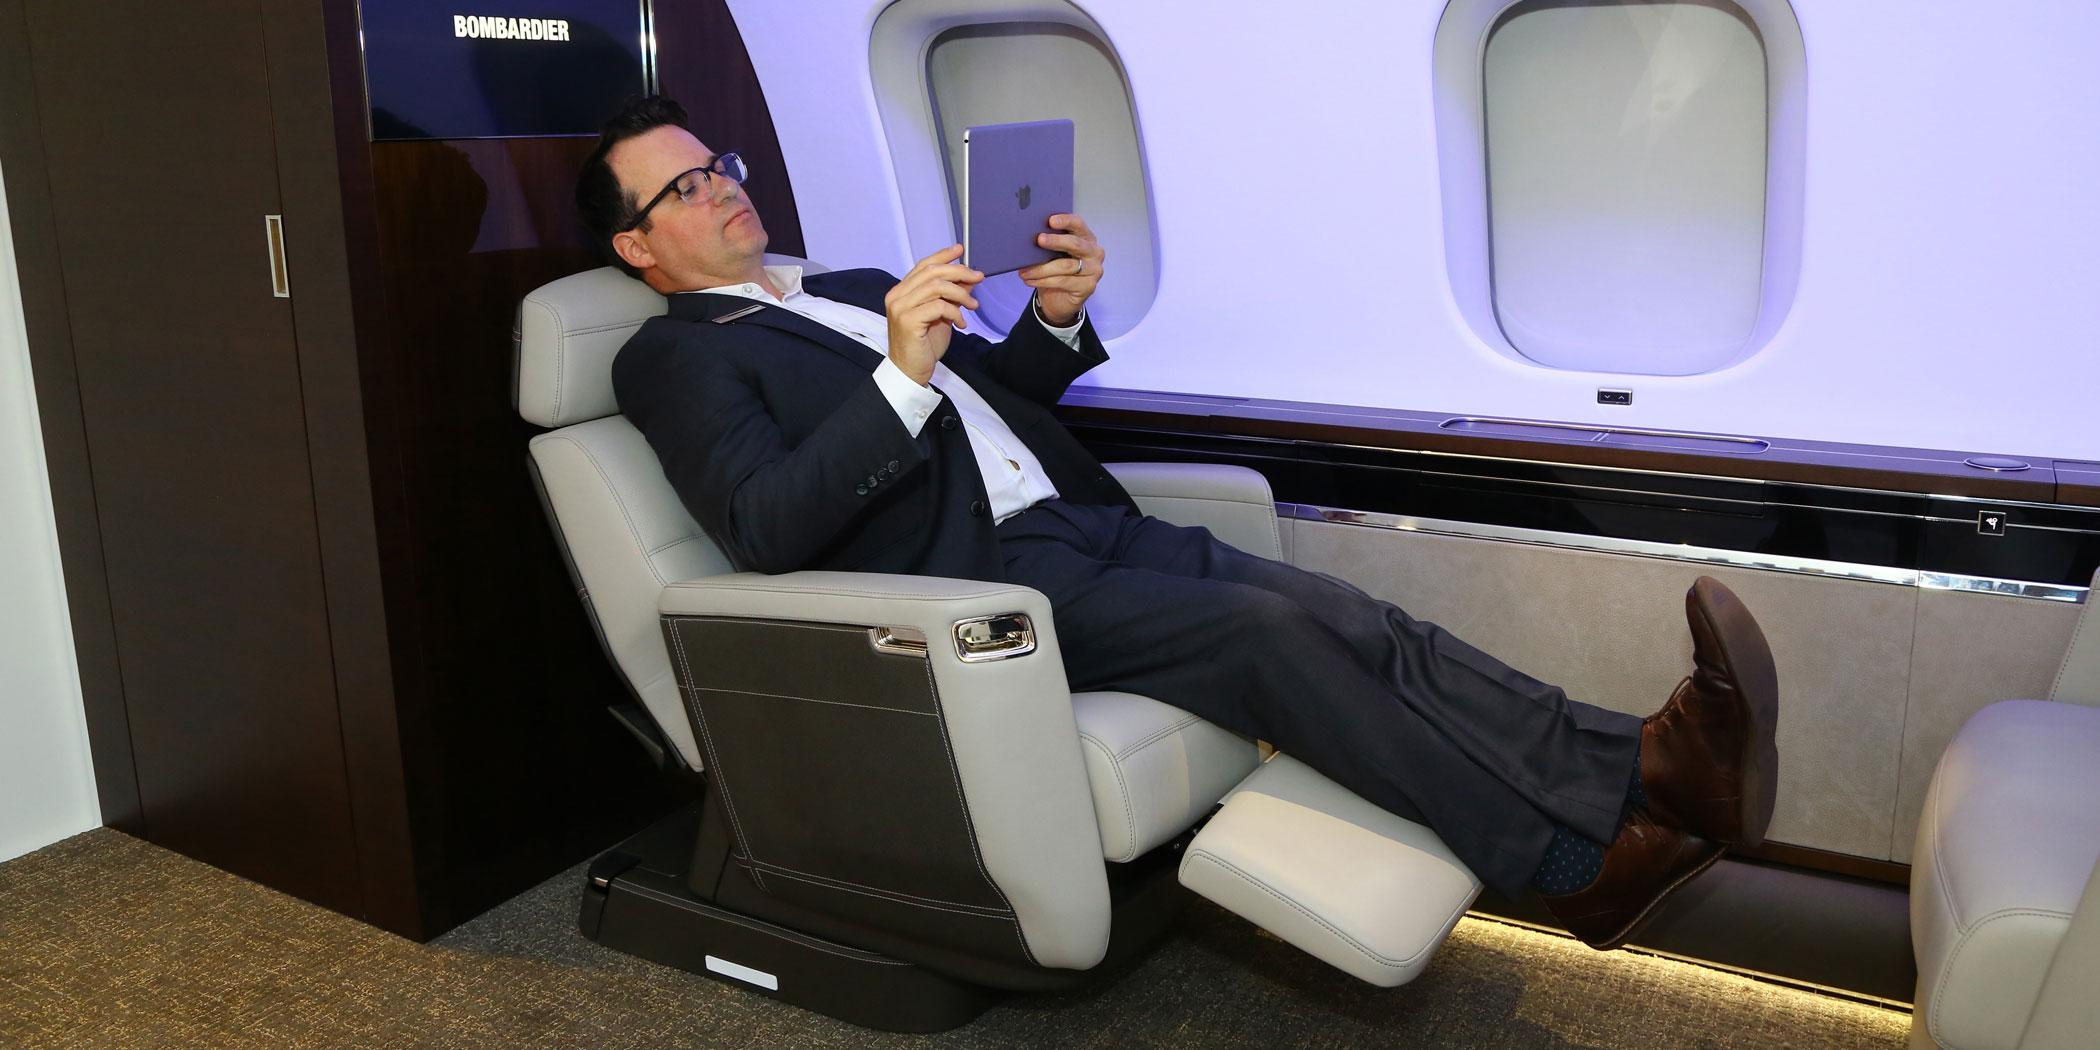 Tim Fagan, Bombardier manager of industrial design, in the Nuage seat Photo: David McIntosh